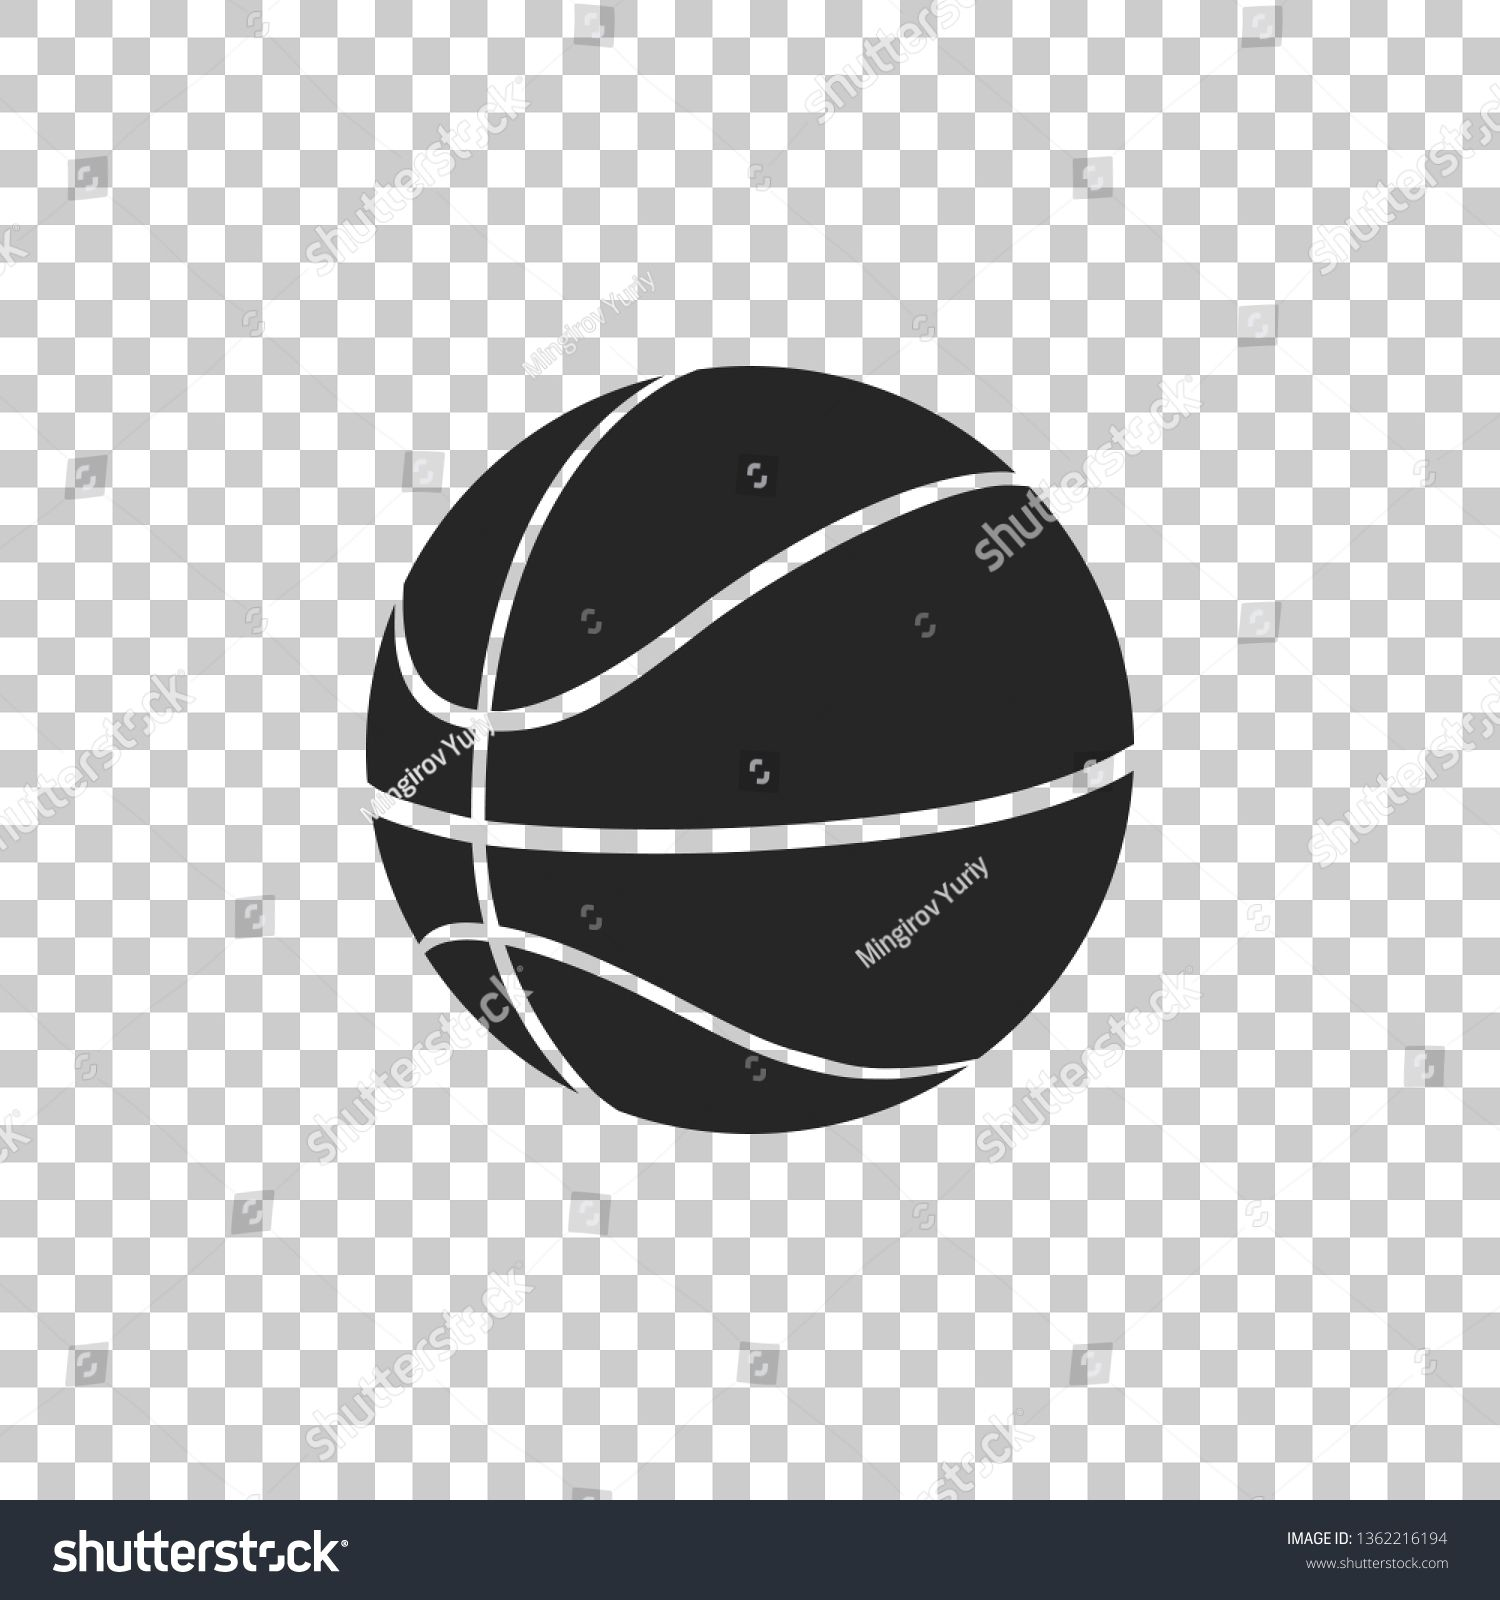 Basketball Ball Icon Isolated On Transparent Background Sport Symbol Flat Design Vector Illustration Ad Aff Basketball Ball Illustration Abstract Design